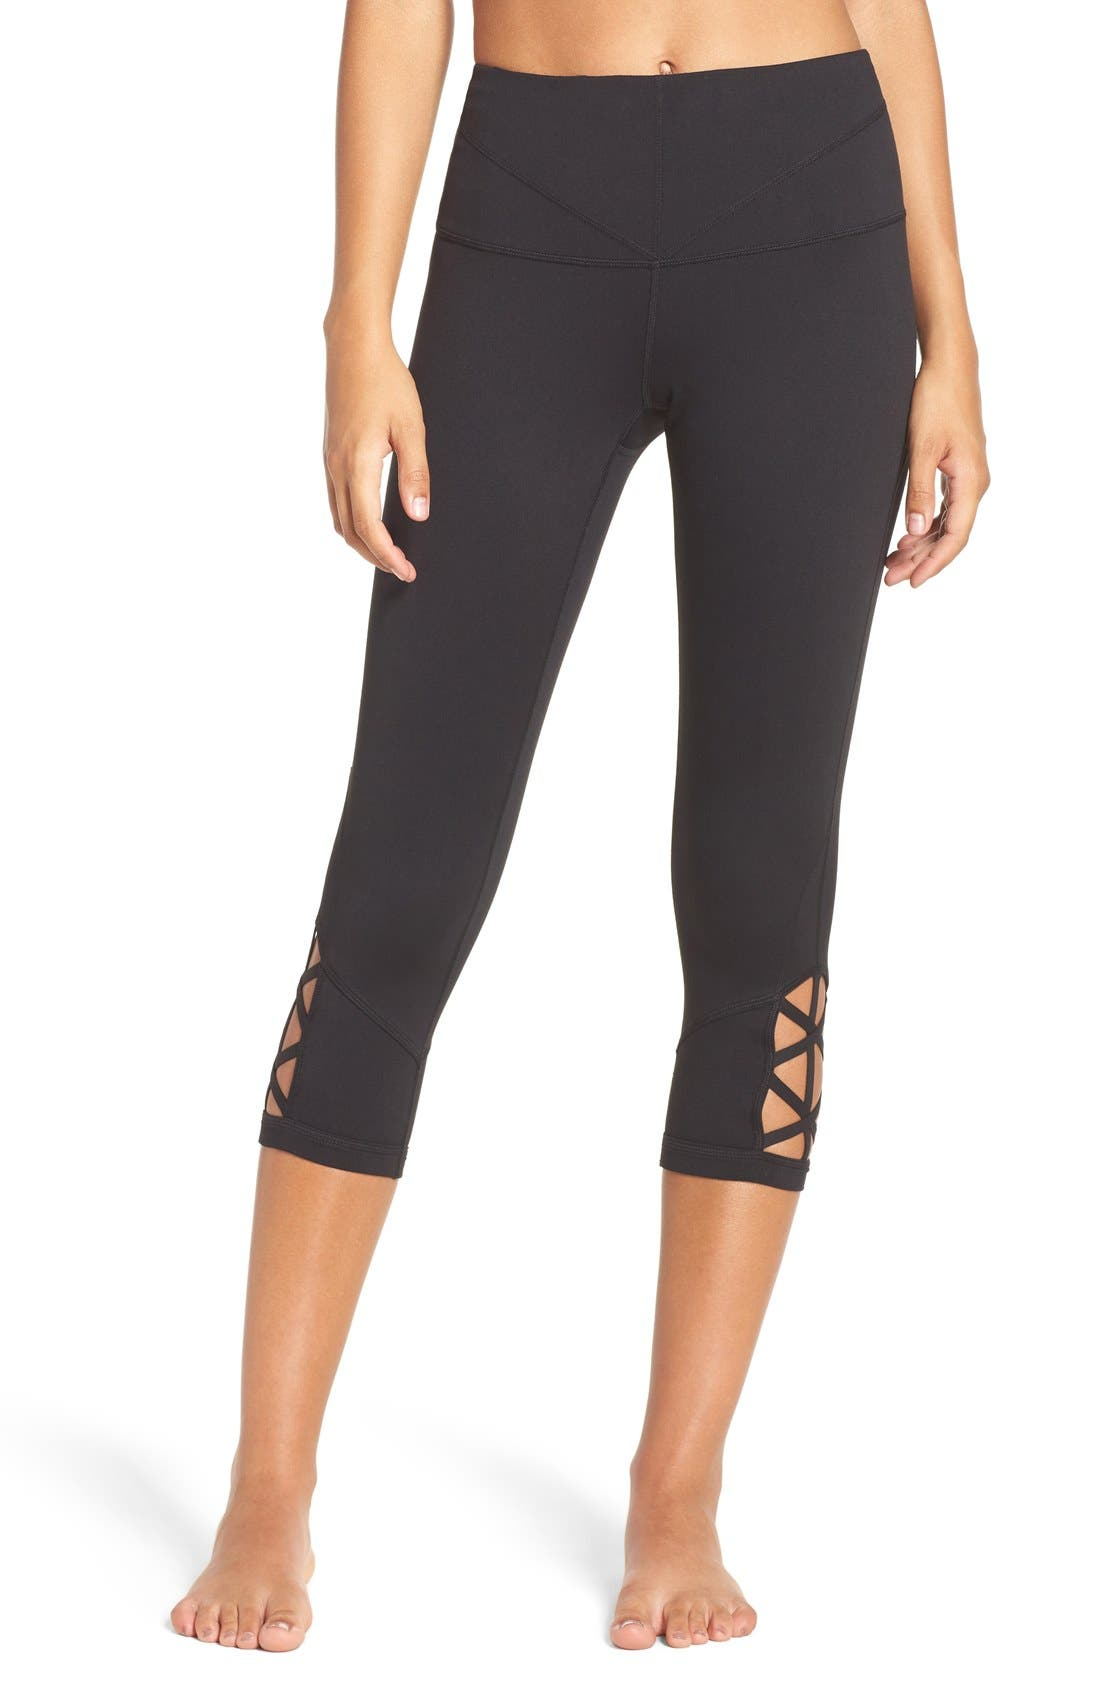 Alternate Image 1 Selected - Zella 'Midnight' High Waist Crop Leggings